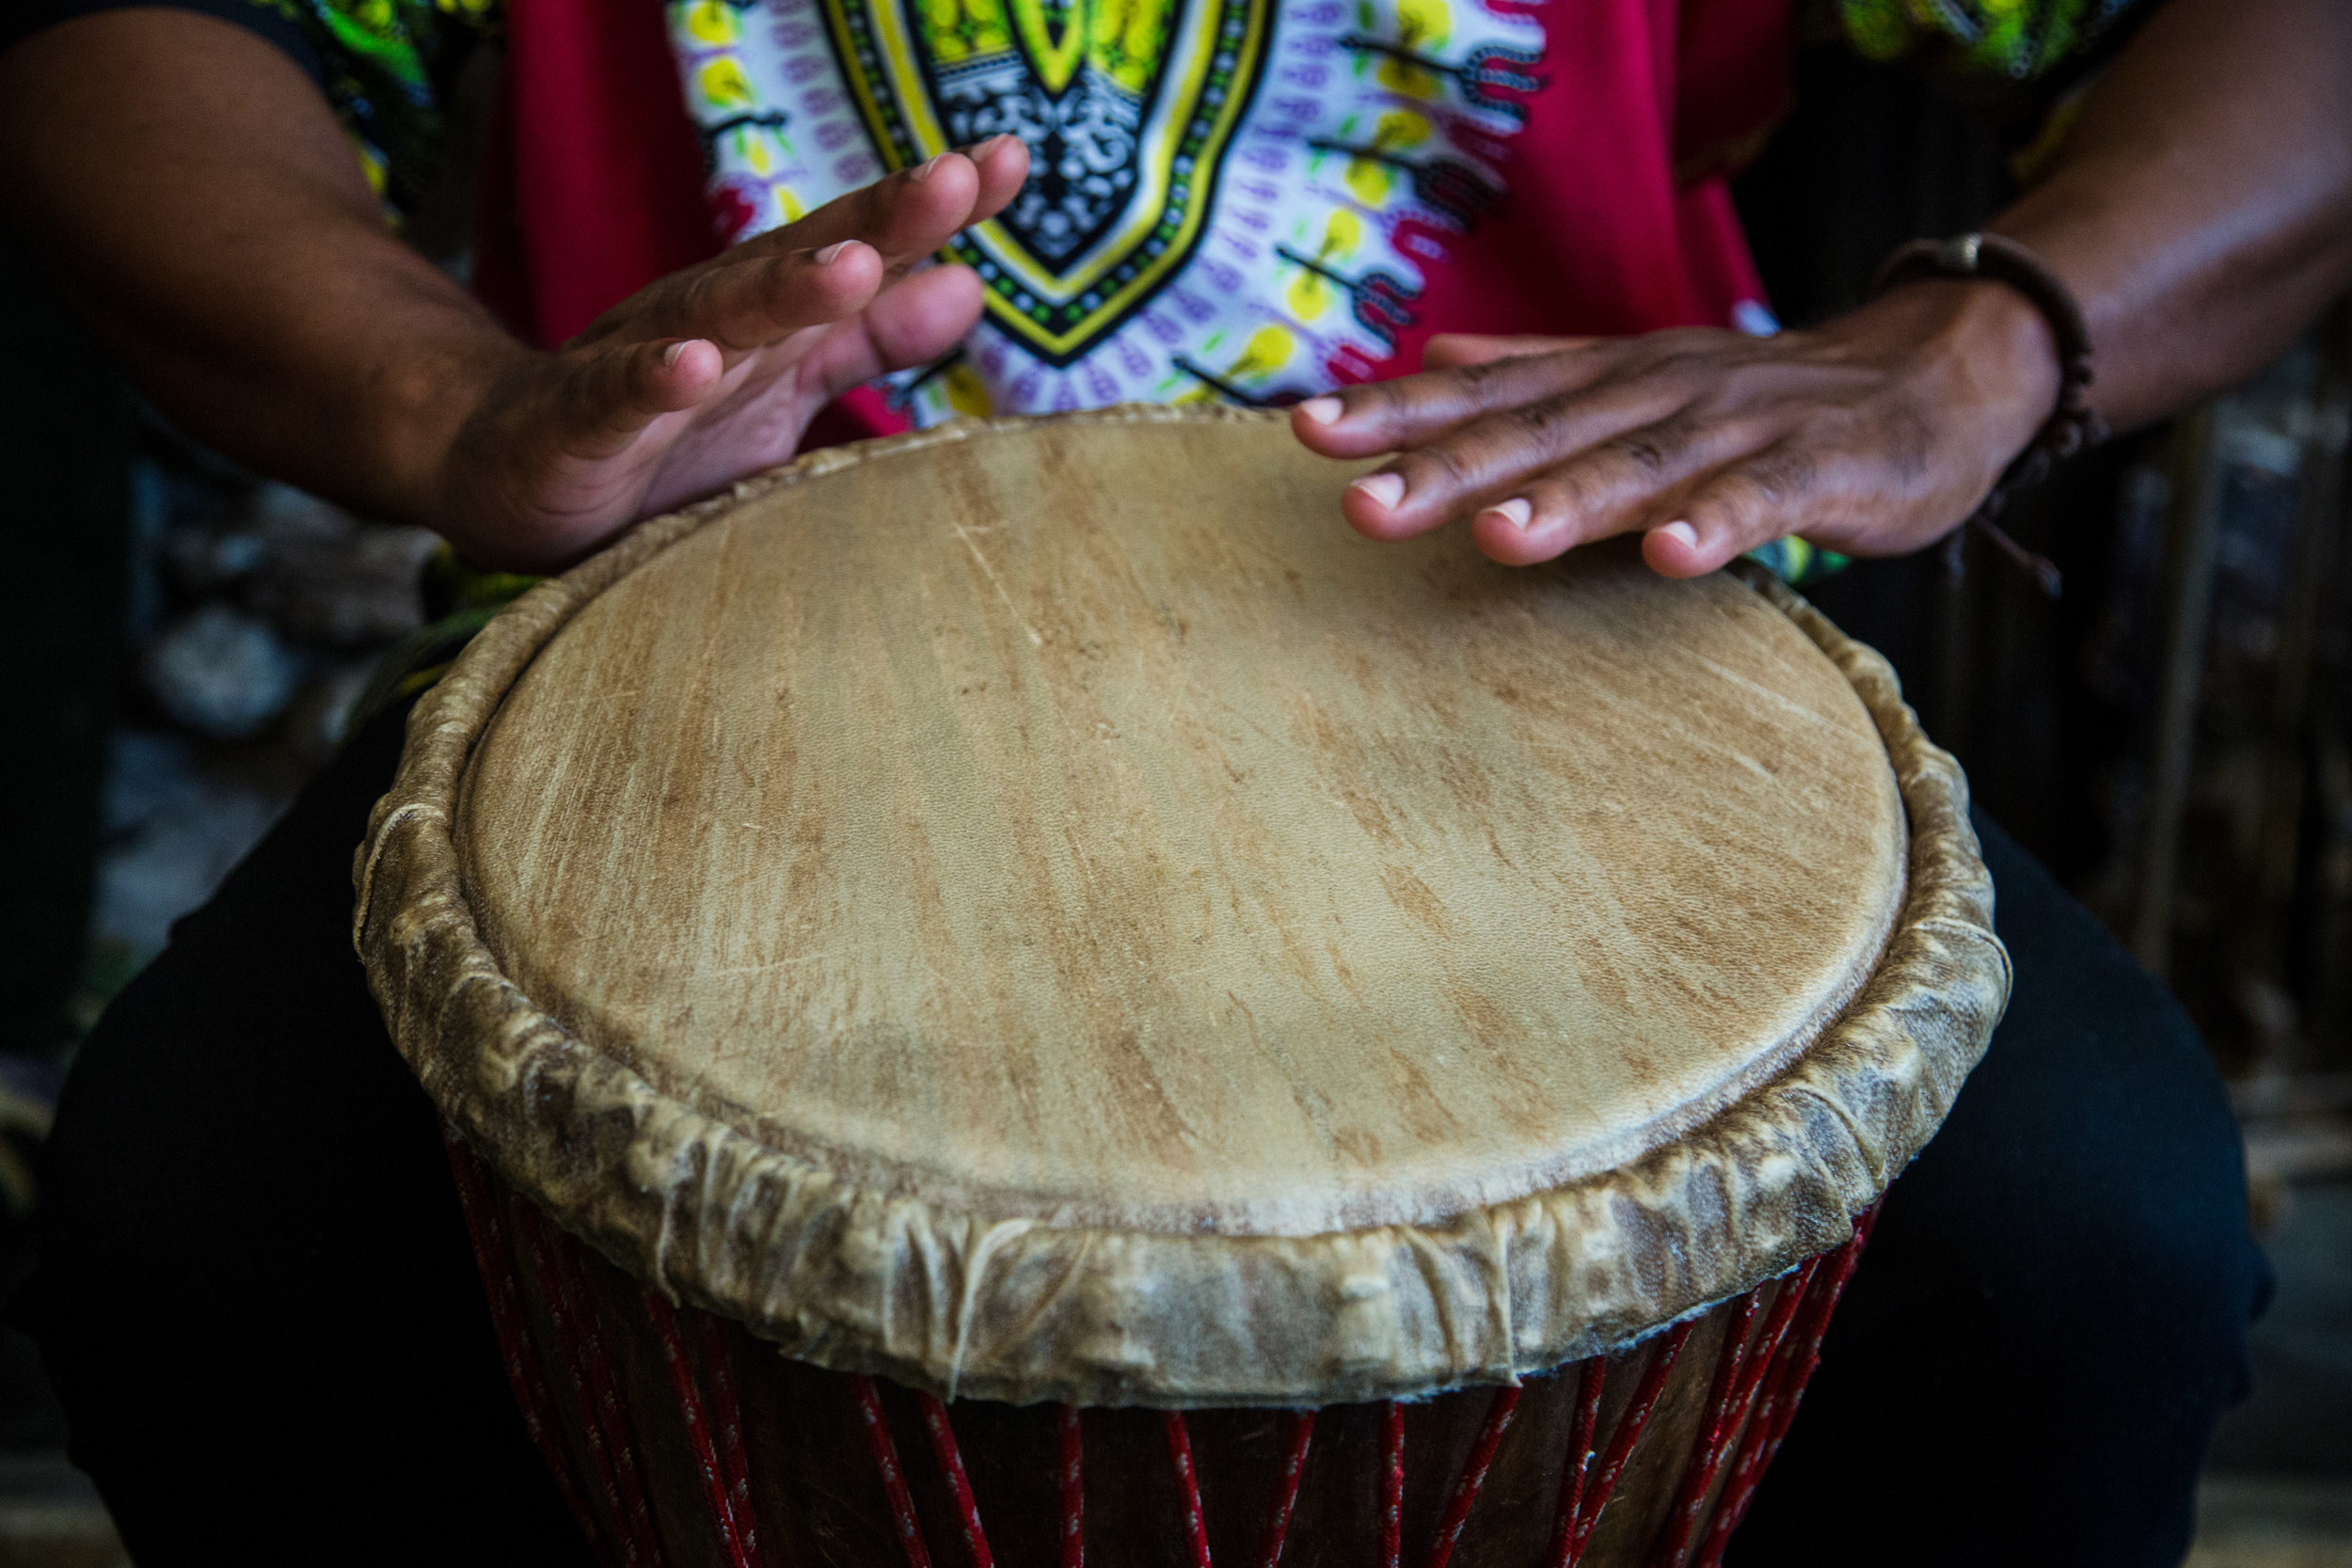 Drums/Djembe in Itacaré, Bahia, Brazil, a place with a big Afro-Brazilian Culture